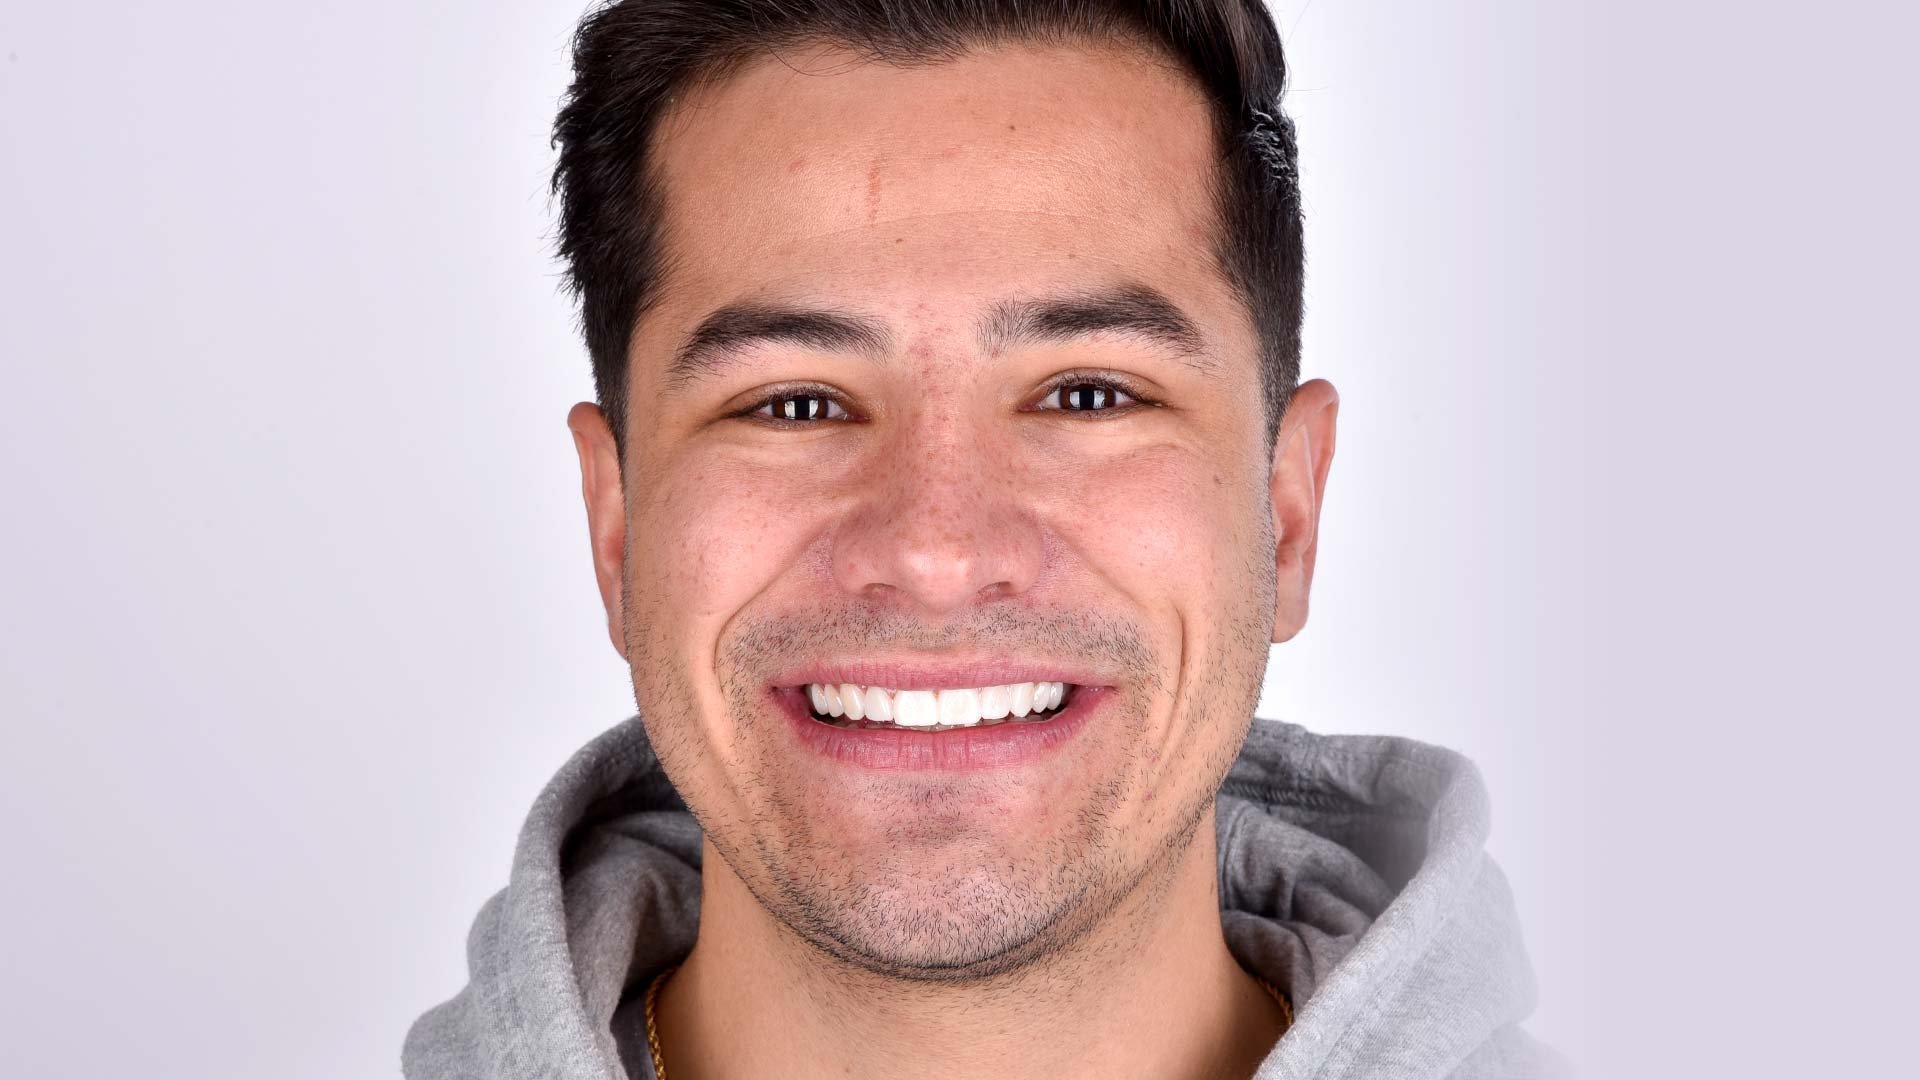 A young man smiling and showing his teeth after Digital Smile Design dental treatment